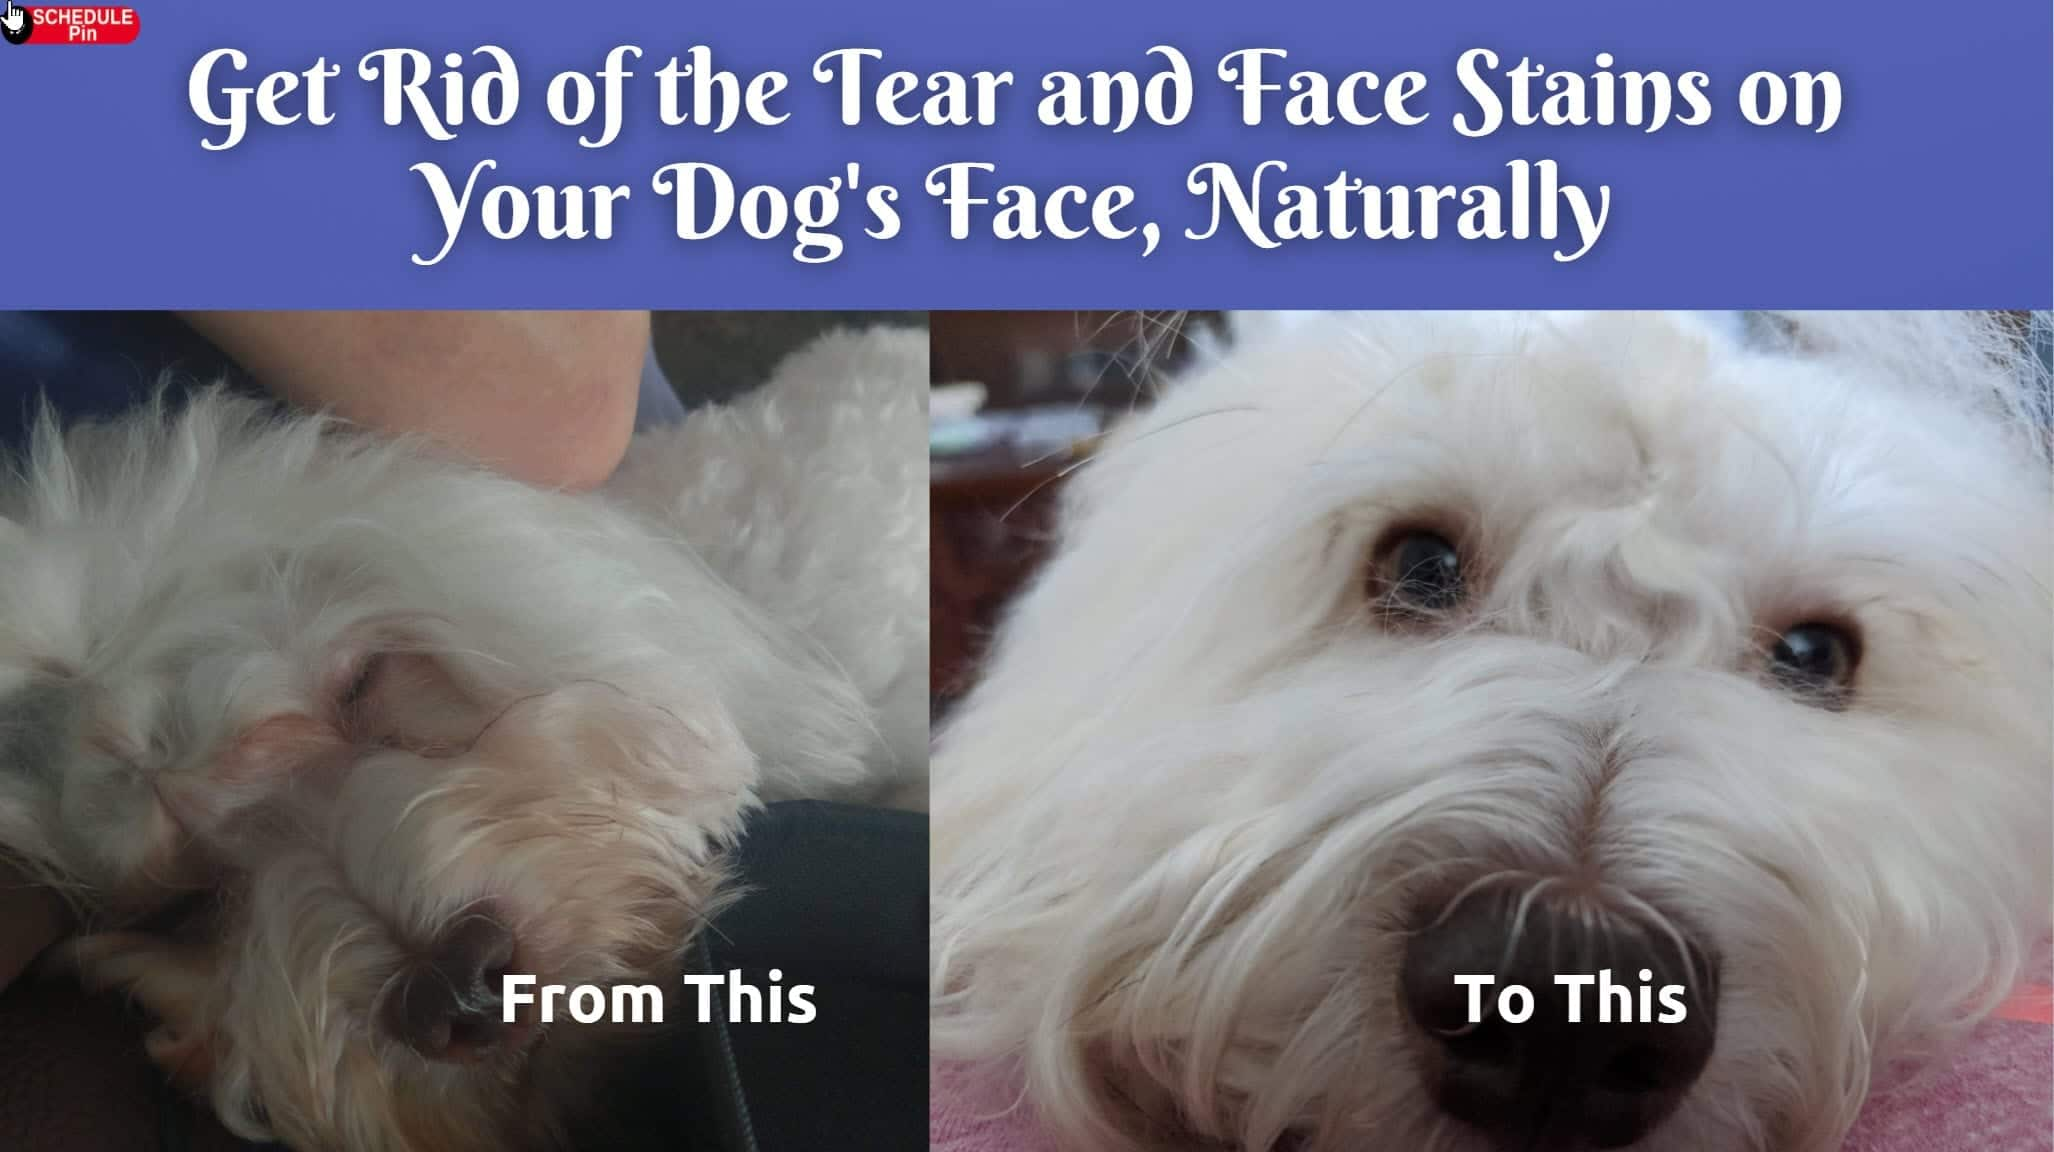 Get Rid of Red Stains On White Dogs Face - Dr.DarHawks 2020-11-22_11-12-29